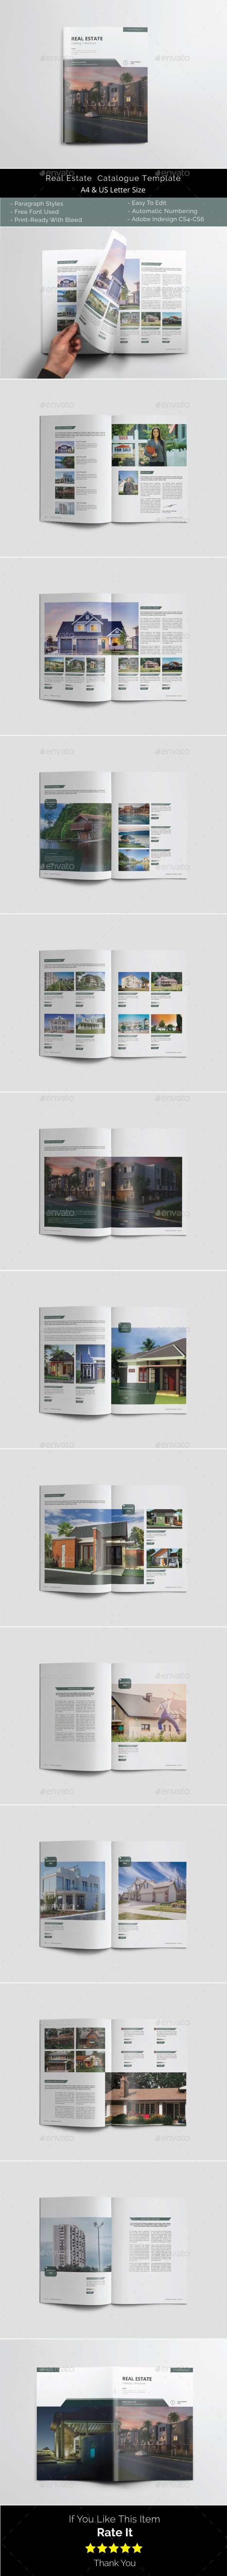 real estate brochure catalogs アトレンテ パンフレット